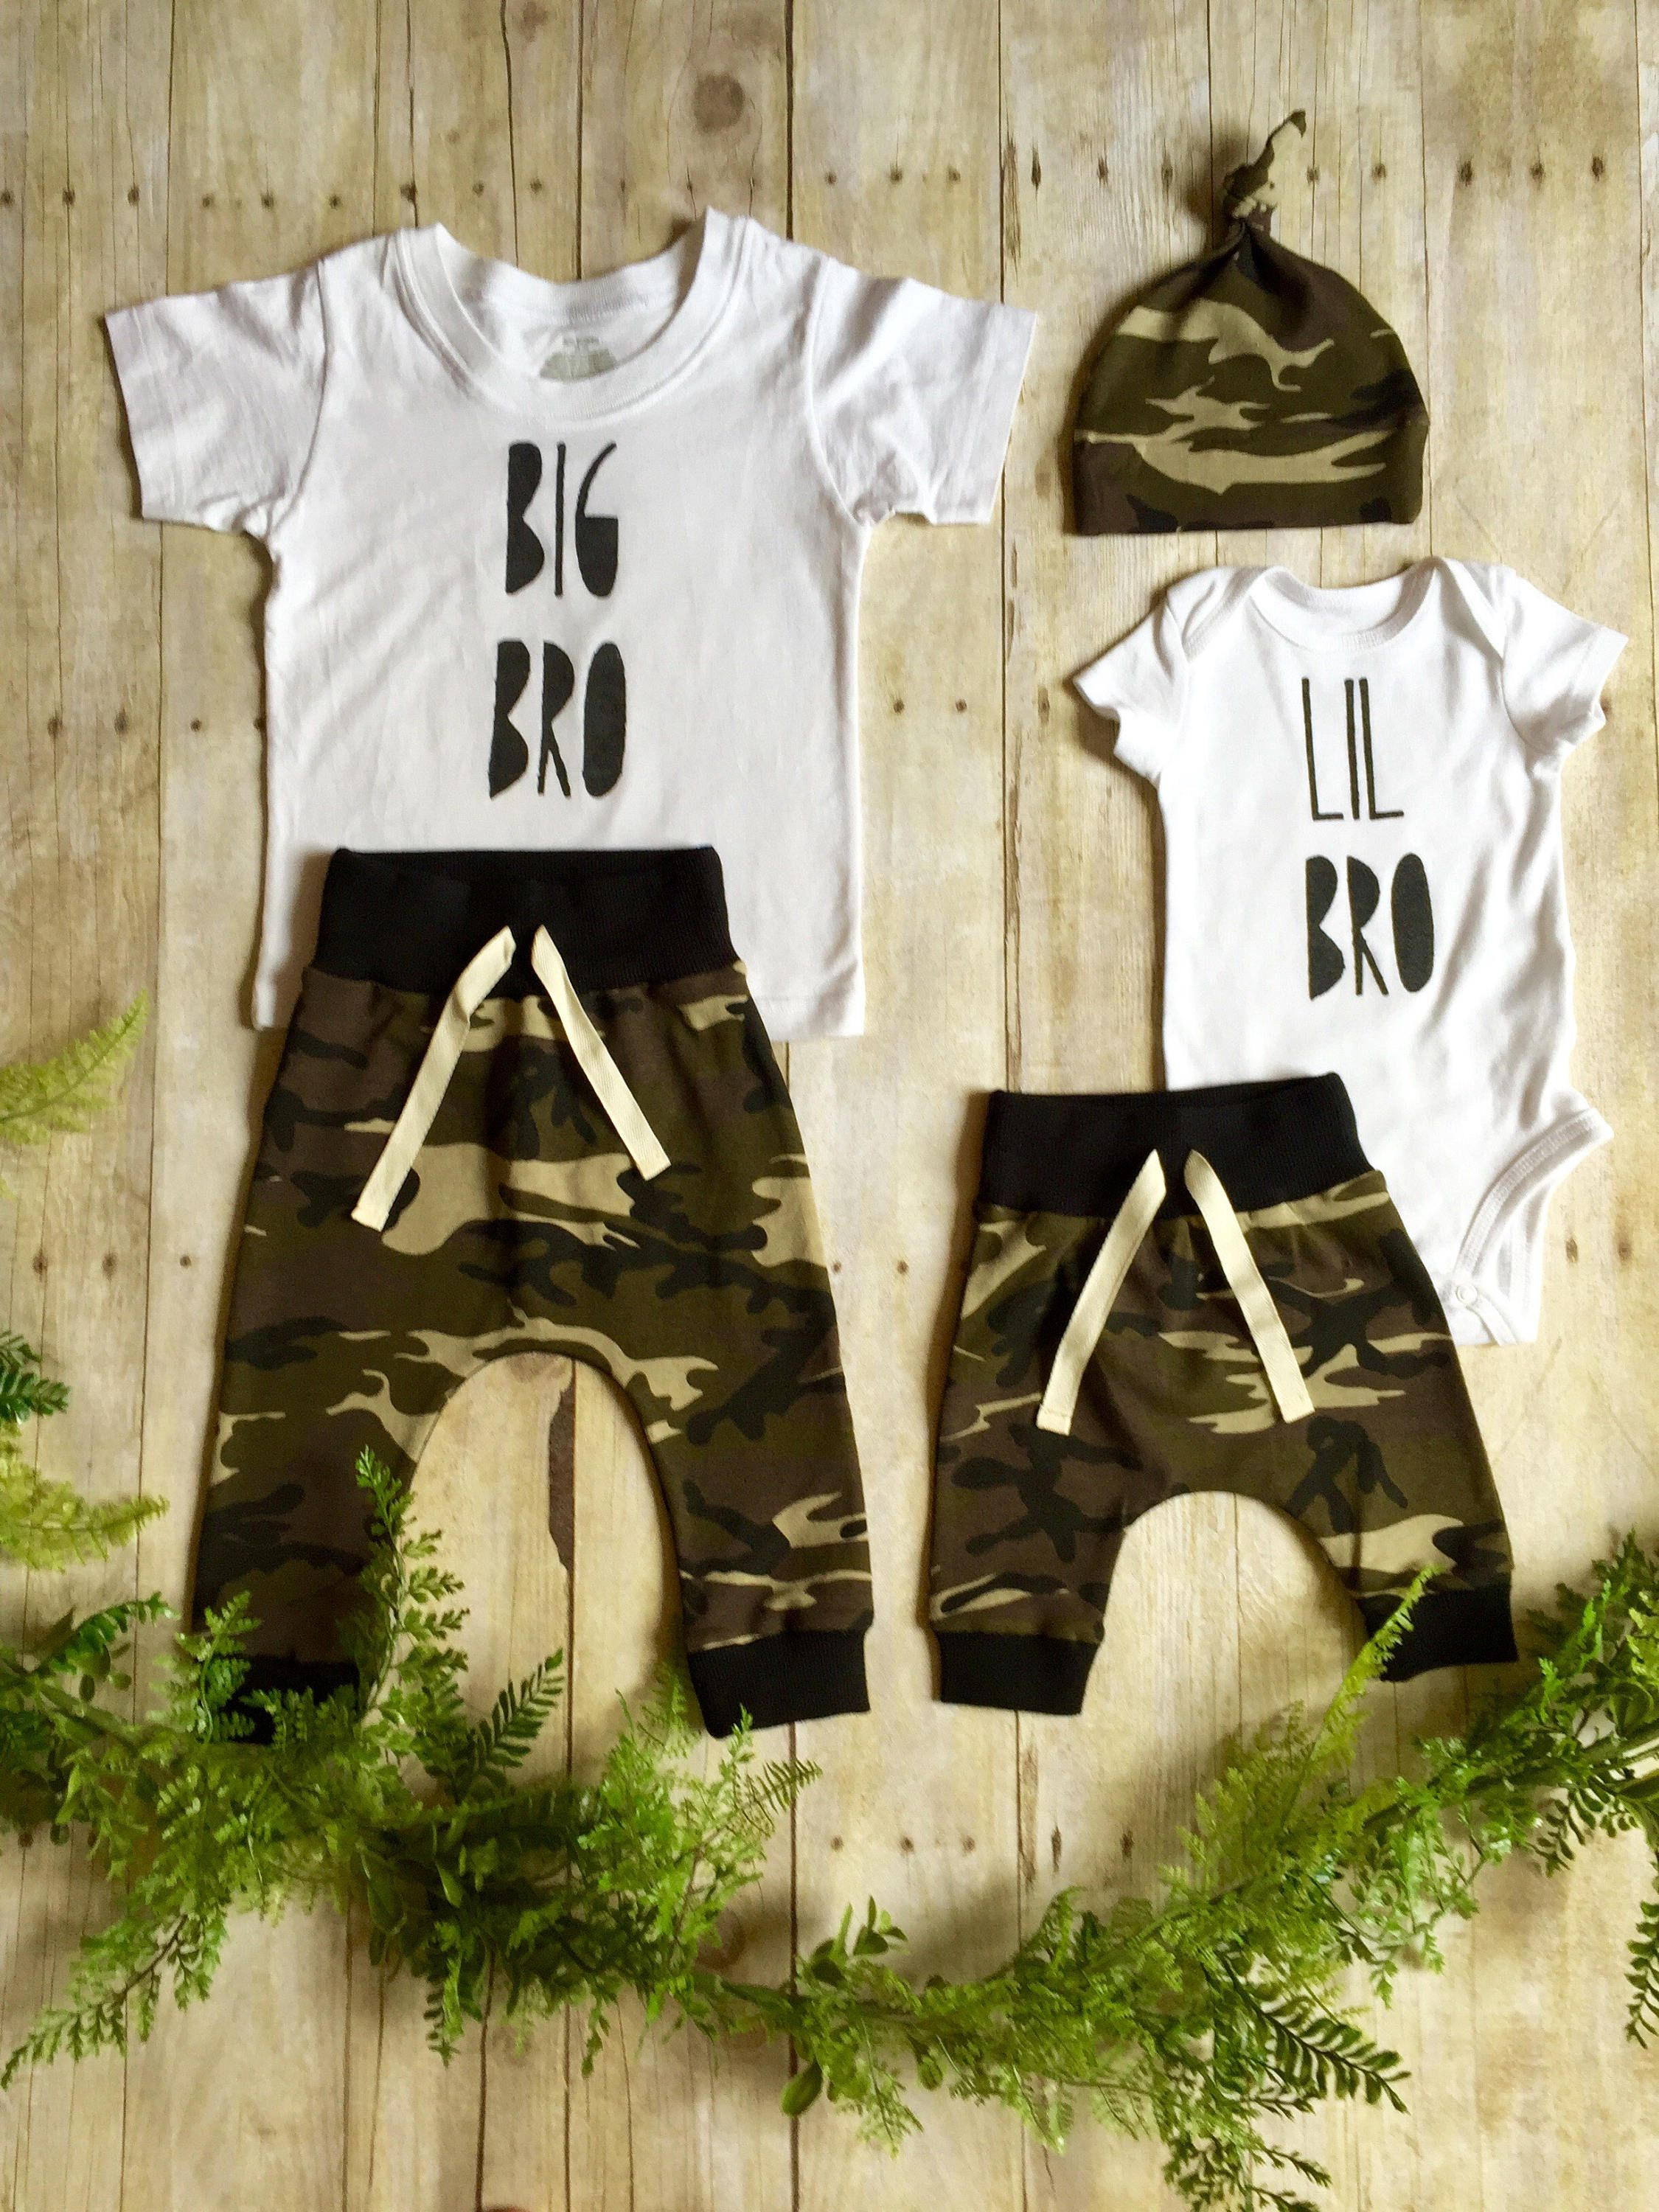 Pants Summer Outfits Set US Matching Clothes Big Brother Little Brother T-Shirt